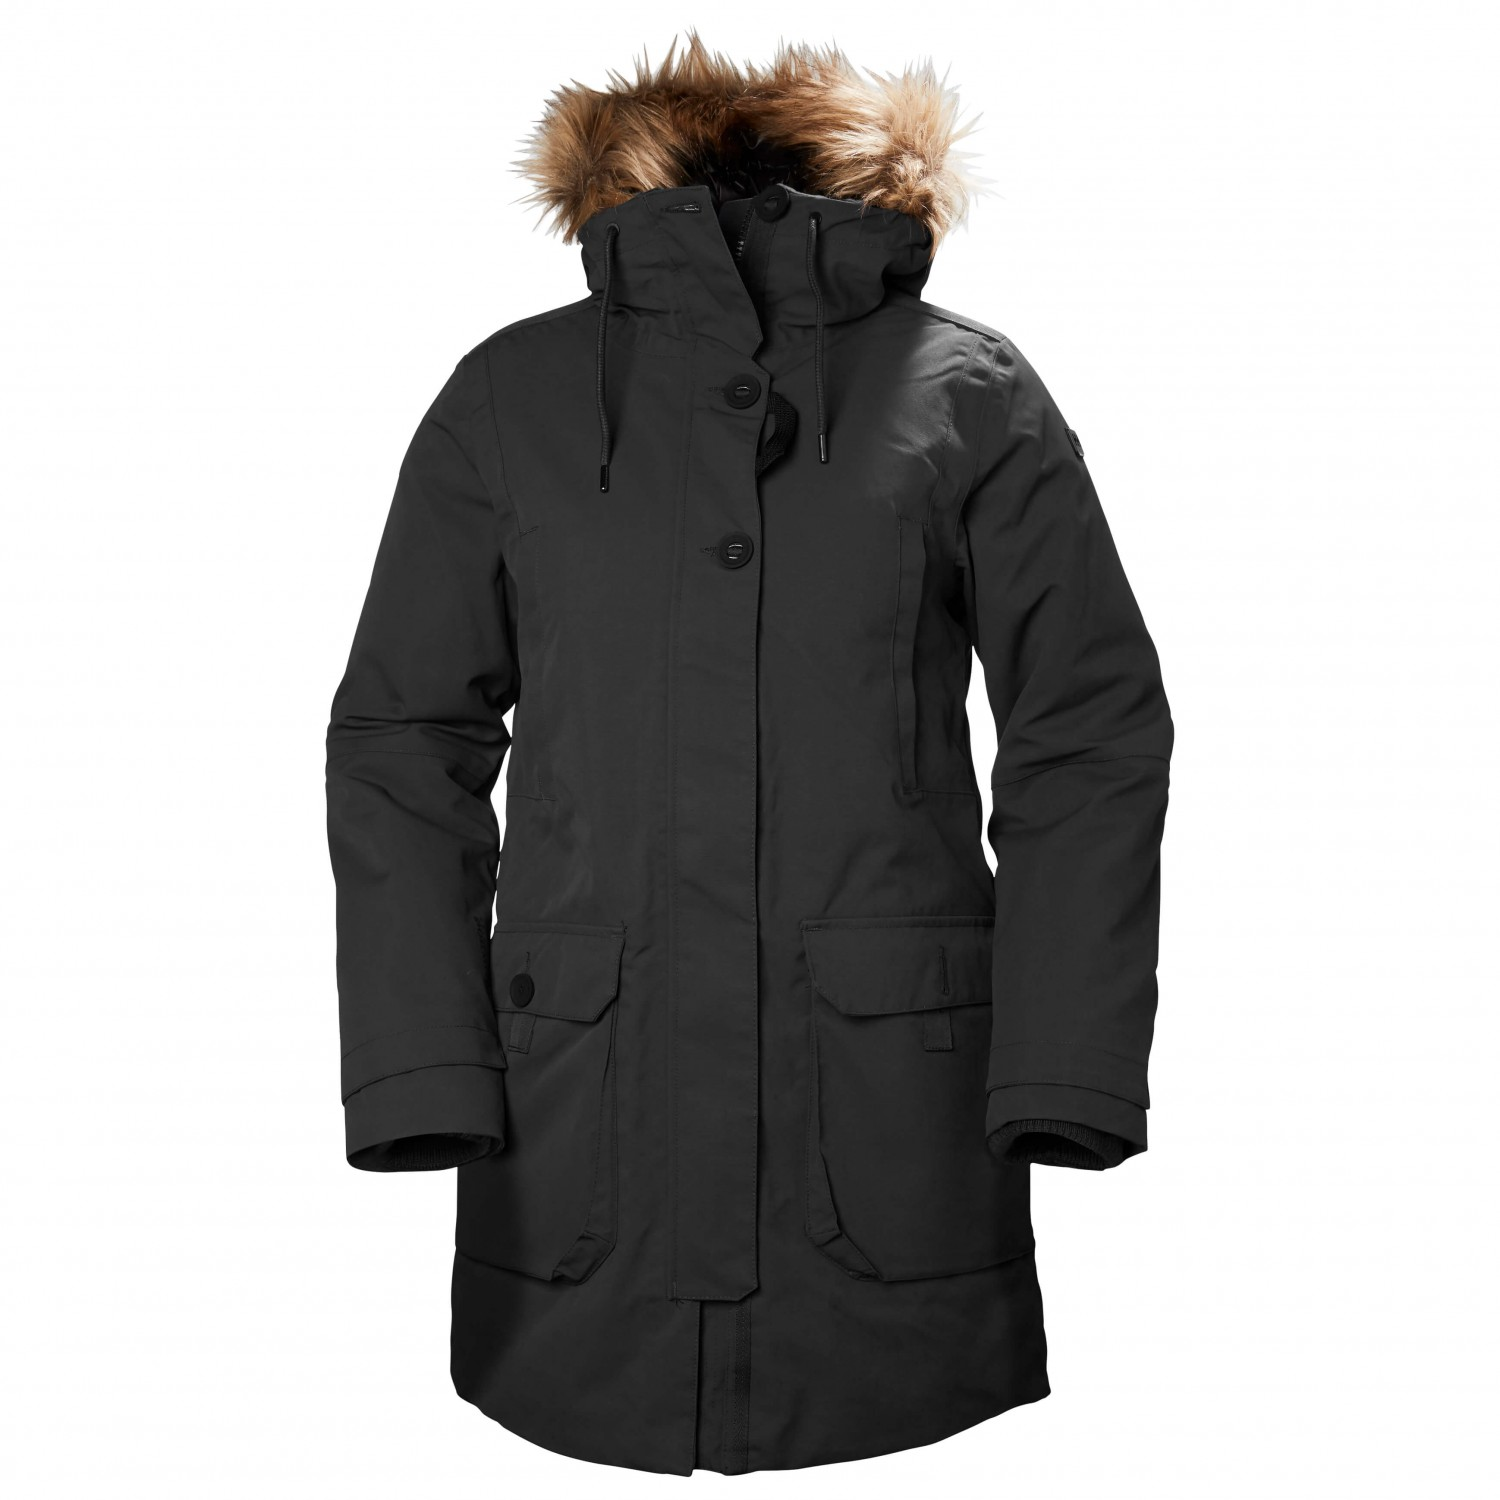 Helly Hansen Longyear Parka Coat Women S Free Uk